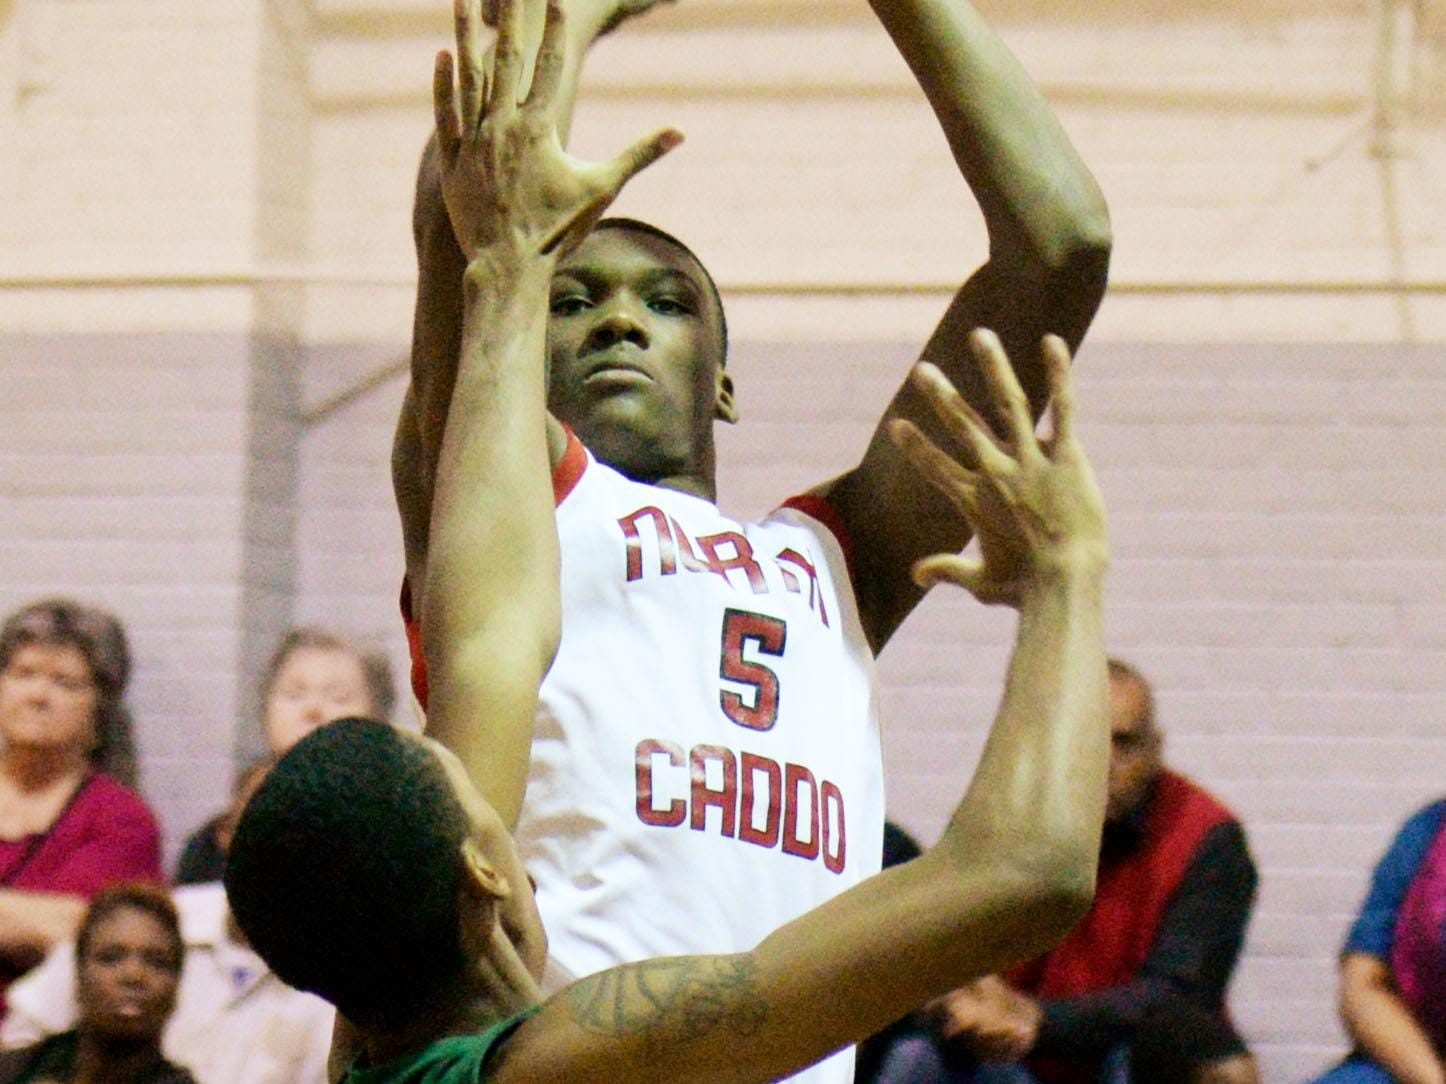 North Caddo's Robert Williams, a Texas A&M signee, is among the area's top returning players.